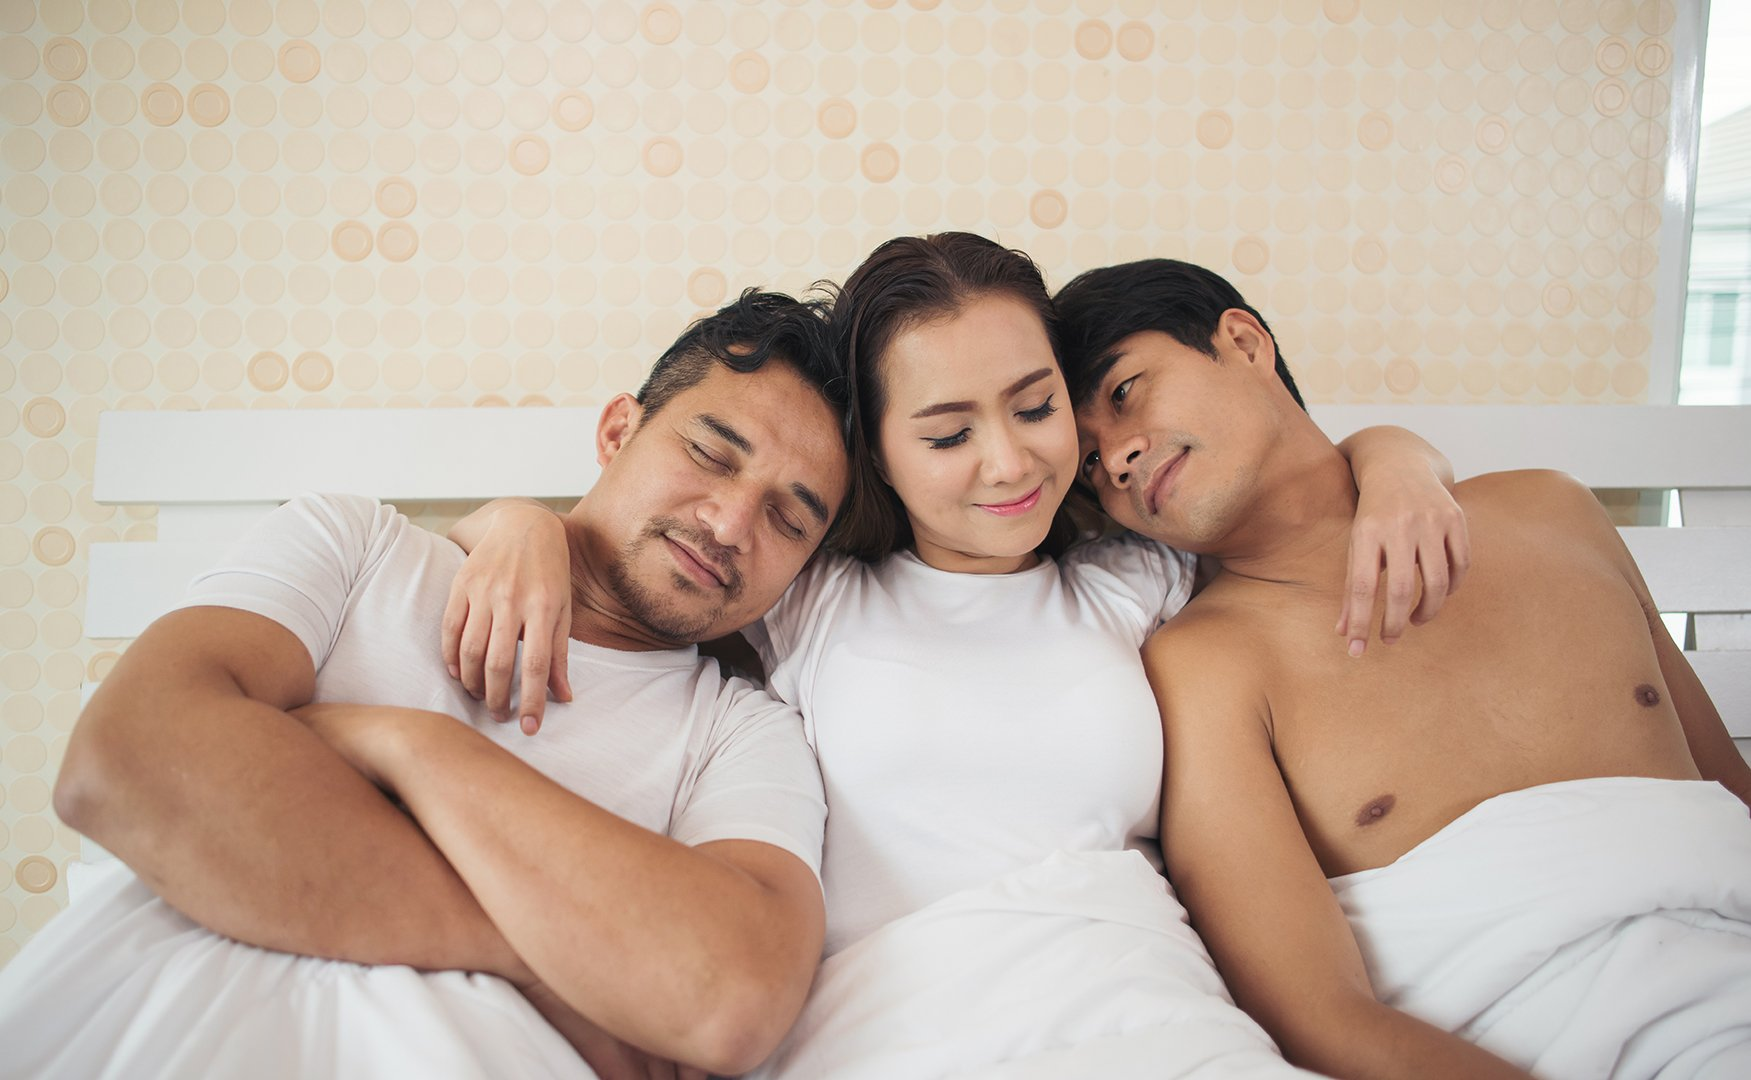 Open Relationships 101: Your Guide to Polyamorous Relationships